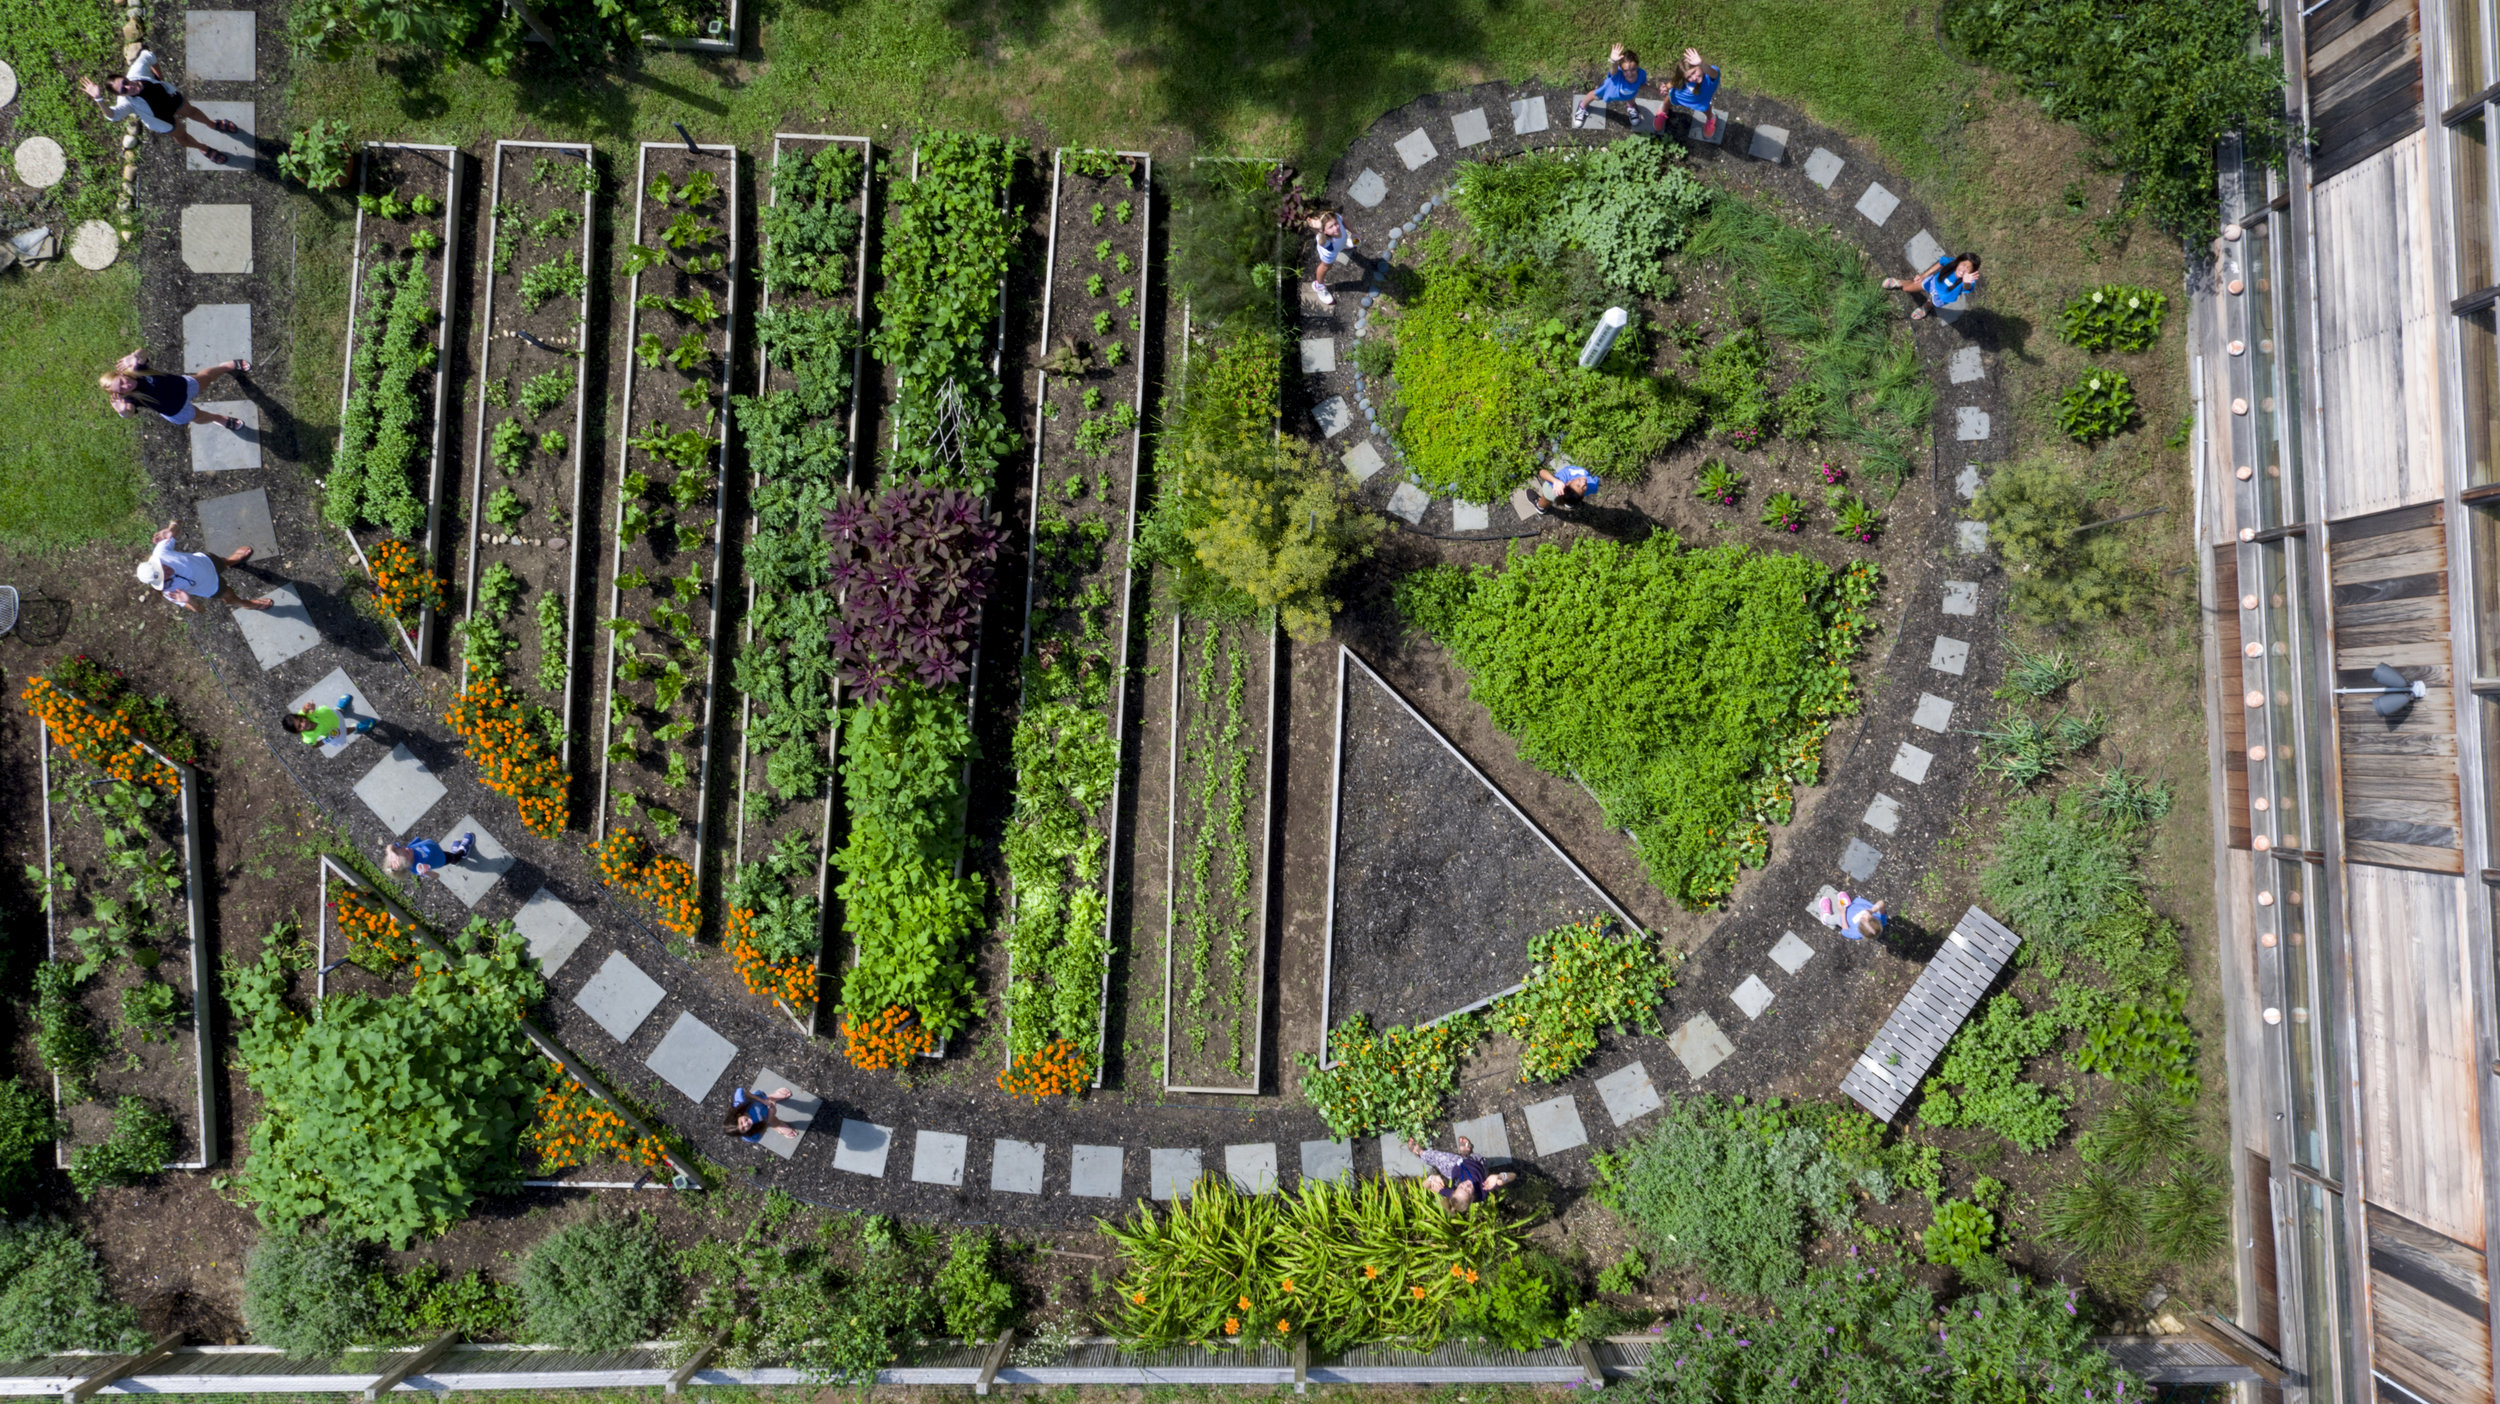 Ross School's Spiral Garden offers hands-on learning opportunities for students and is a source of fresh produce for the Caf é .    Photo by Olga Goworek, 2018